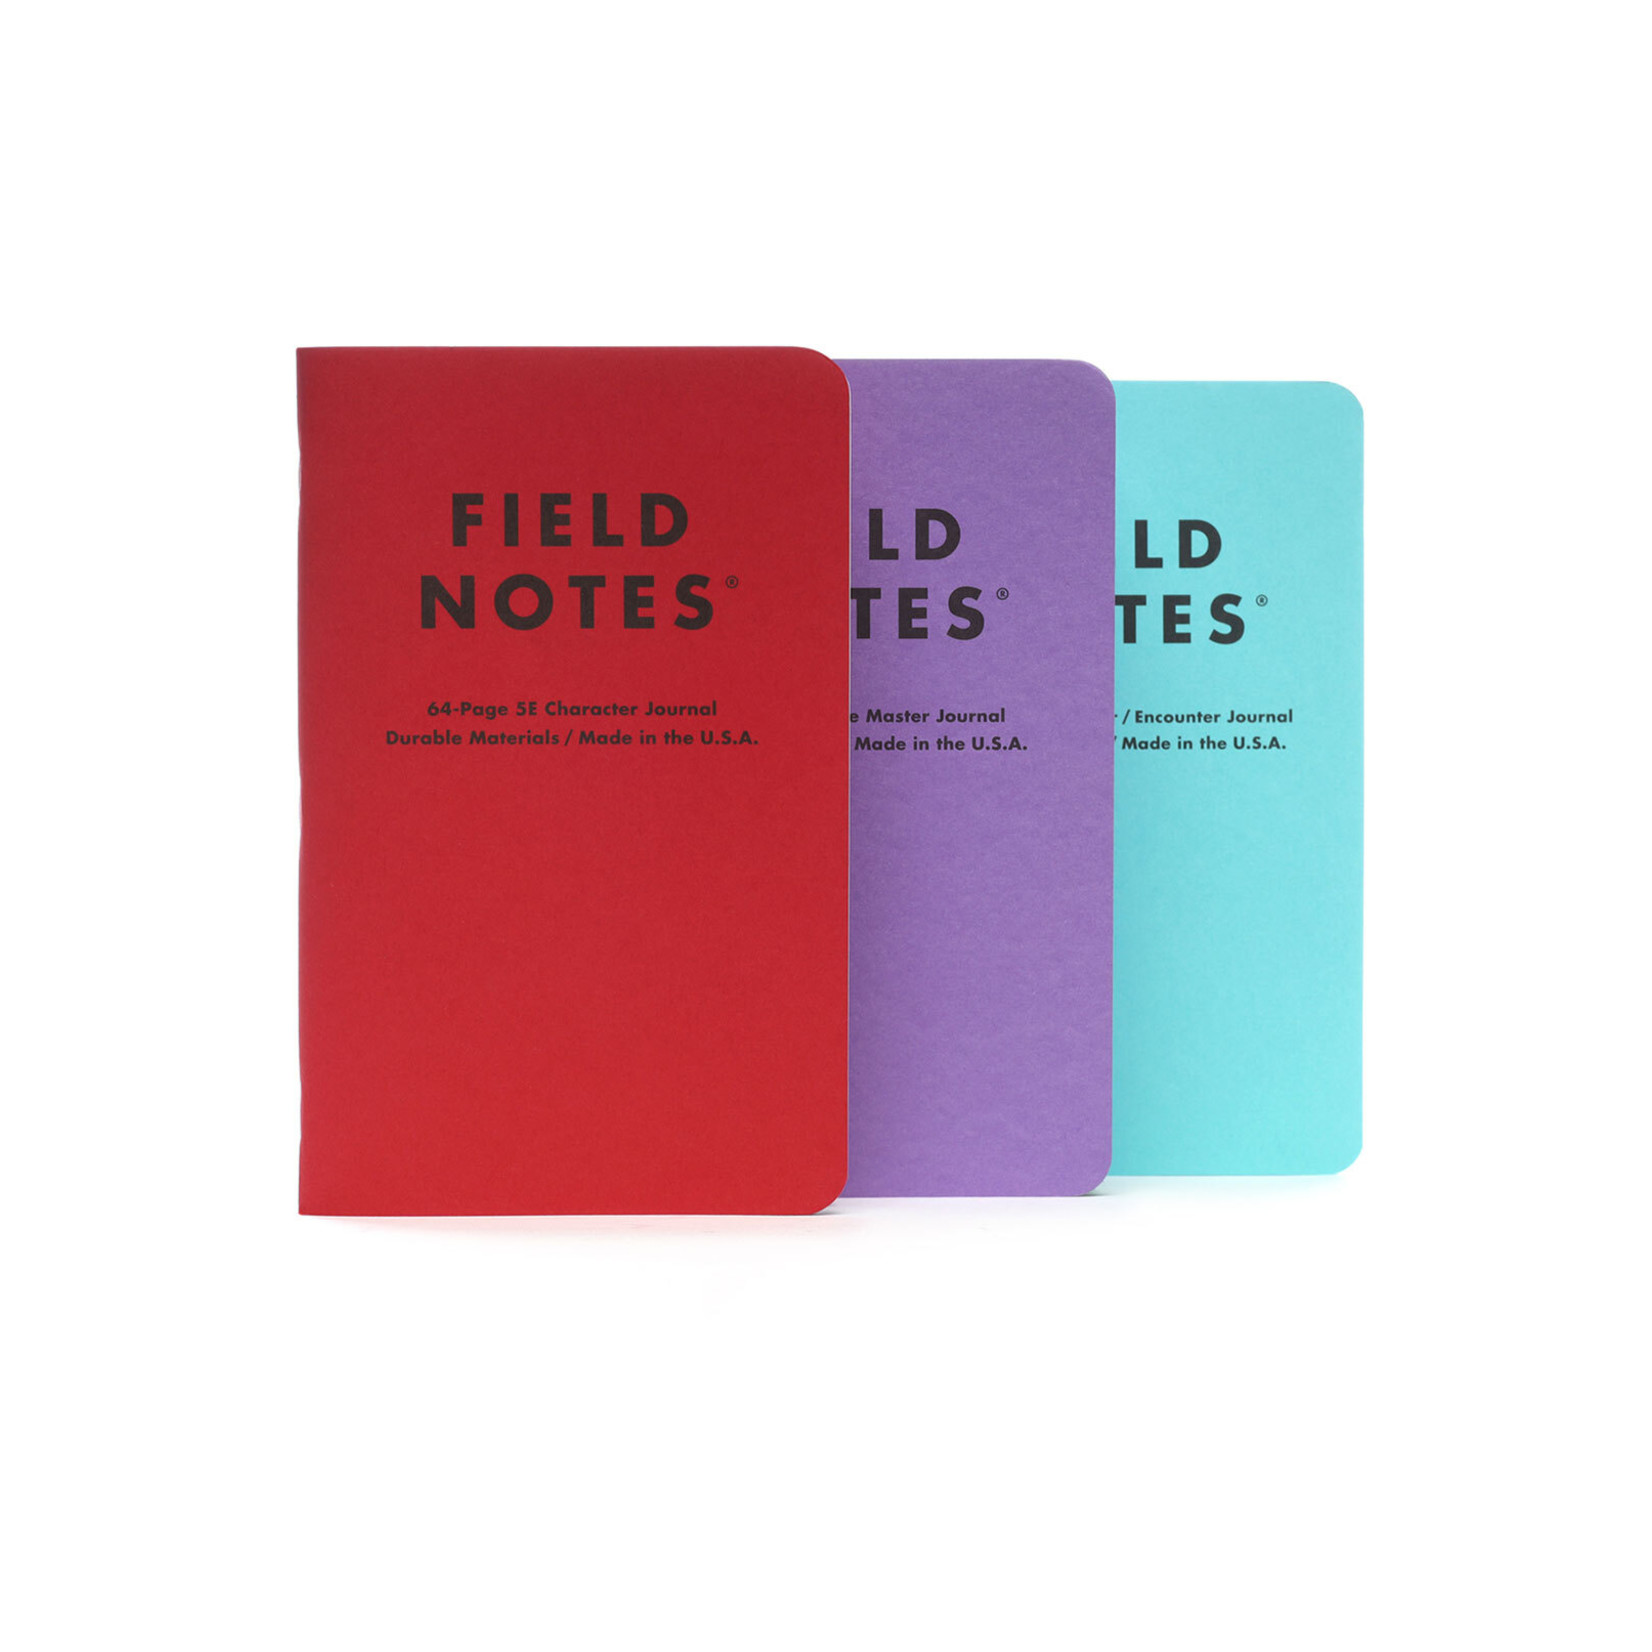 Field Notes Field Notes: 5th Edition Monster/Encounter Journals